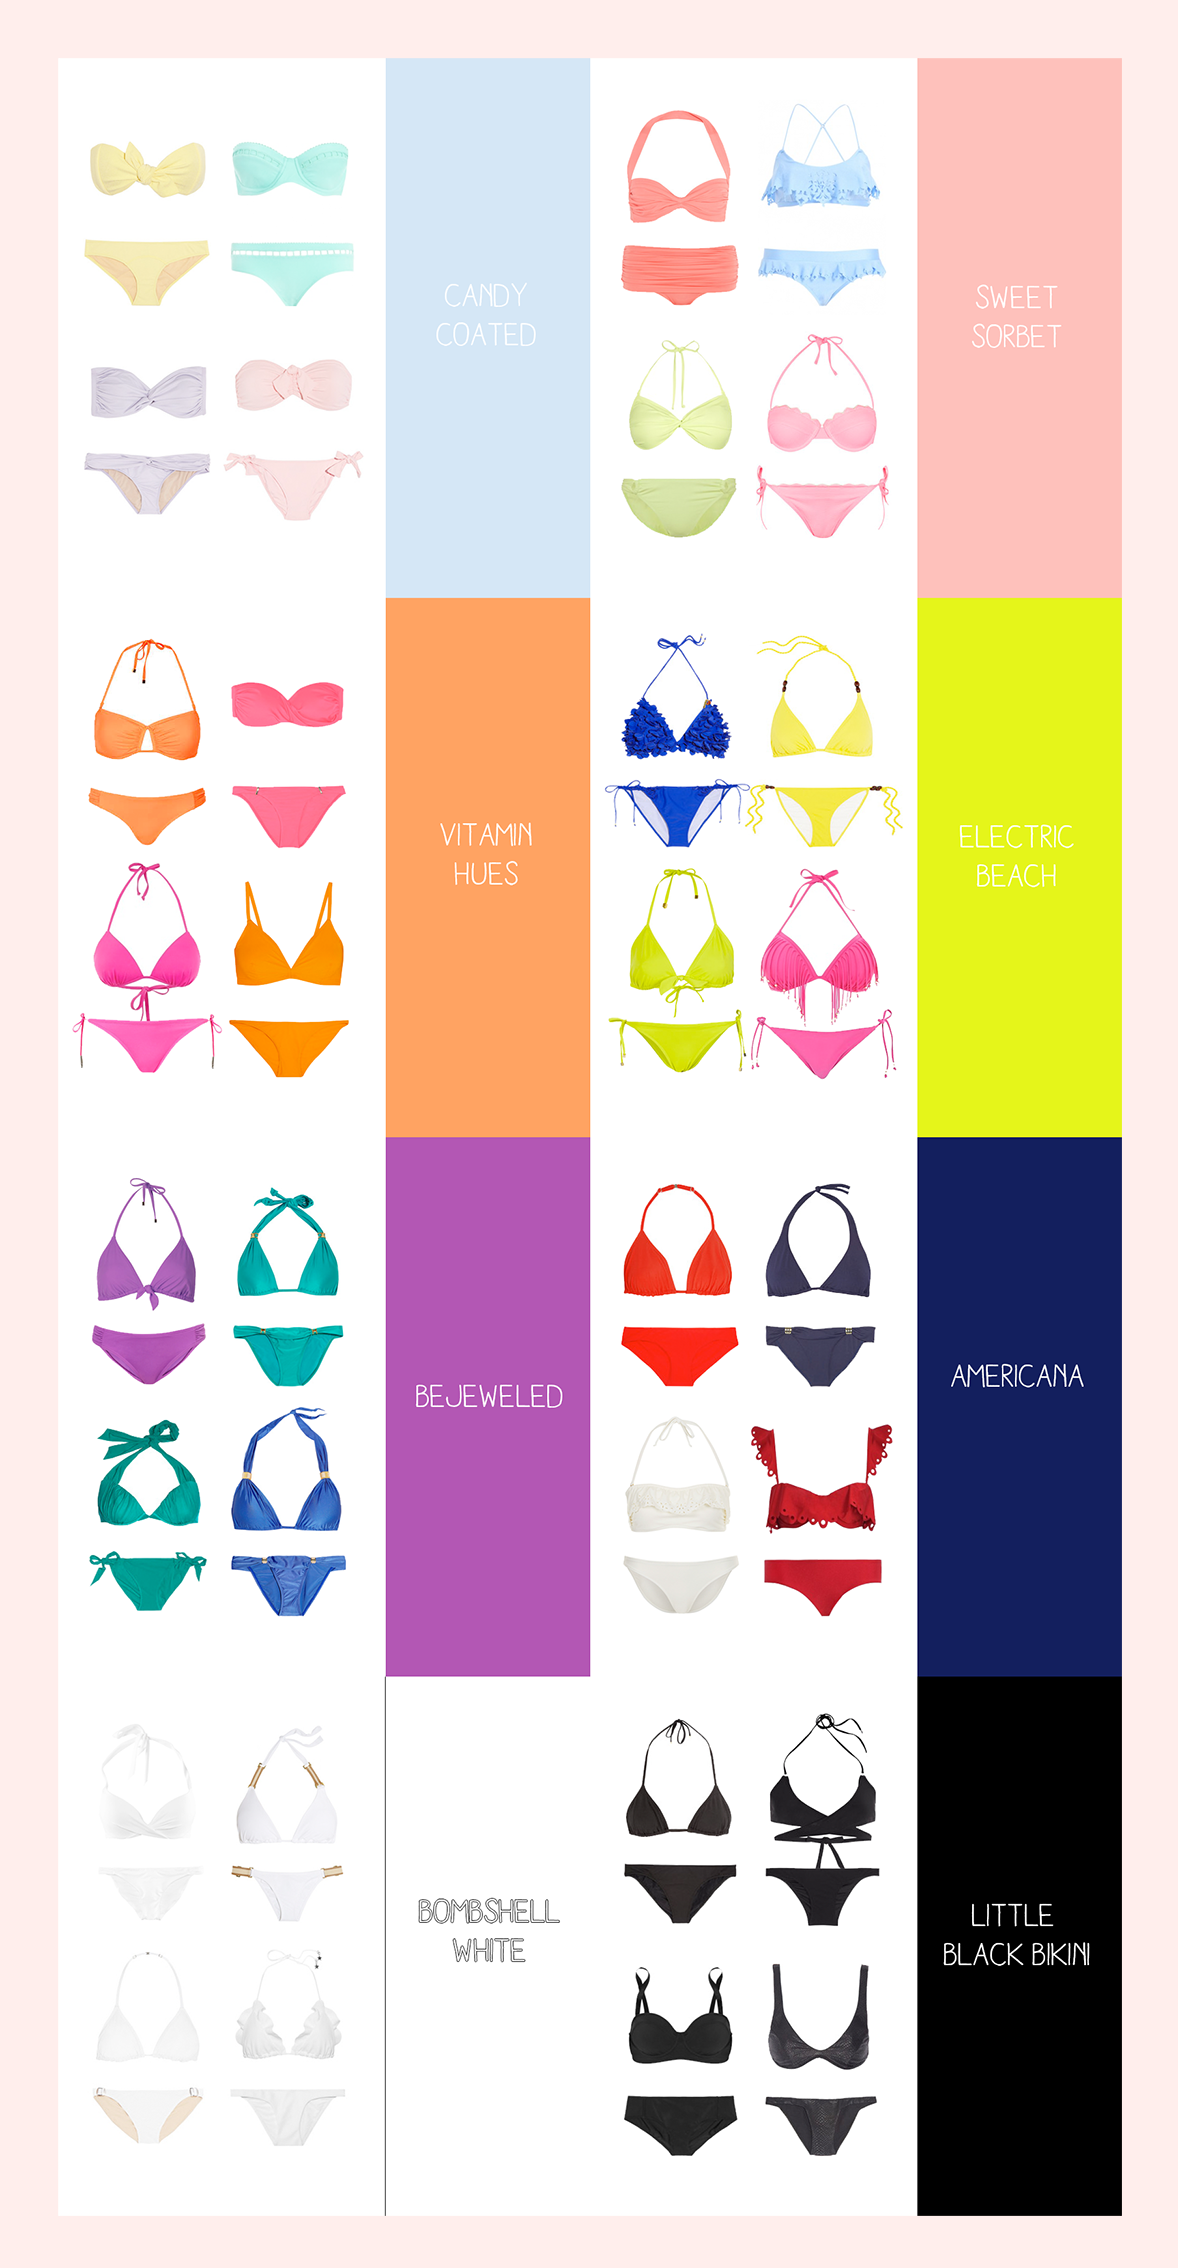 Bikini season 2013 summer colors sweetnraw i wanted to whip up a little color chart just in case you wanna look at them together thats a wrap for our summer season coverage we are moving towards nvjuhfo Choice Image